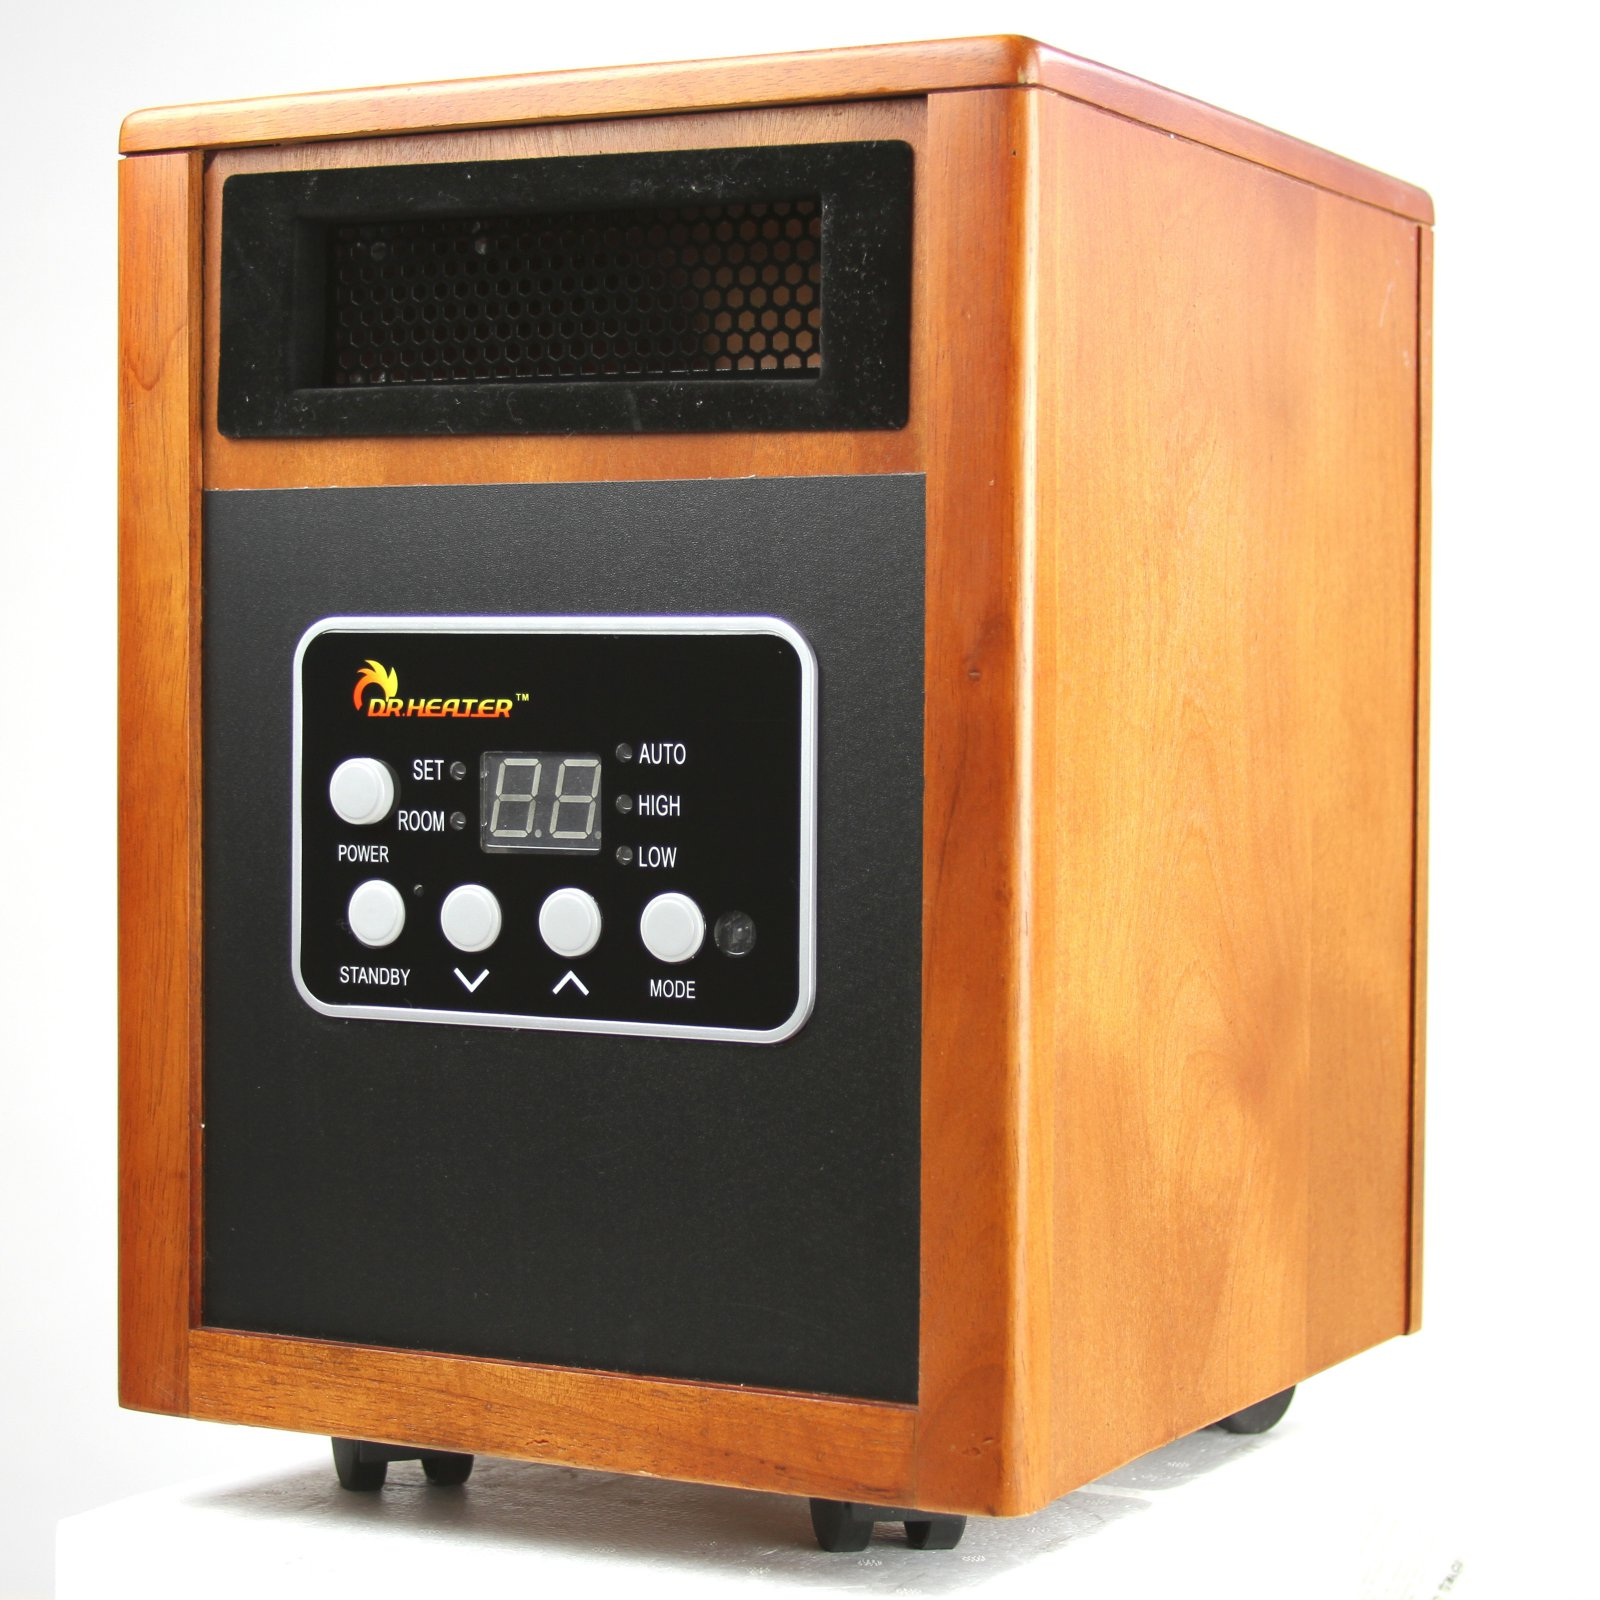 Pass piss test with portable heater